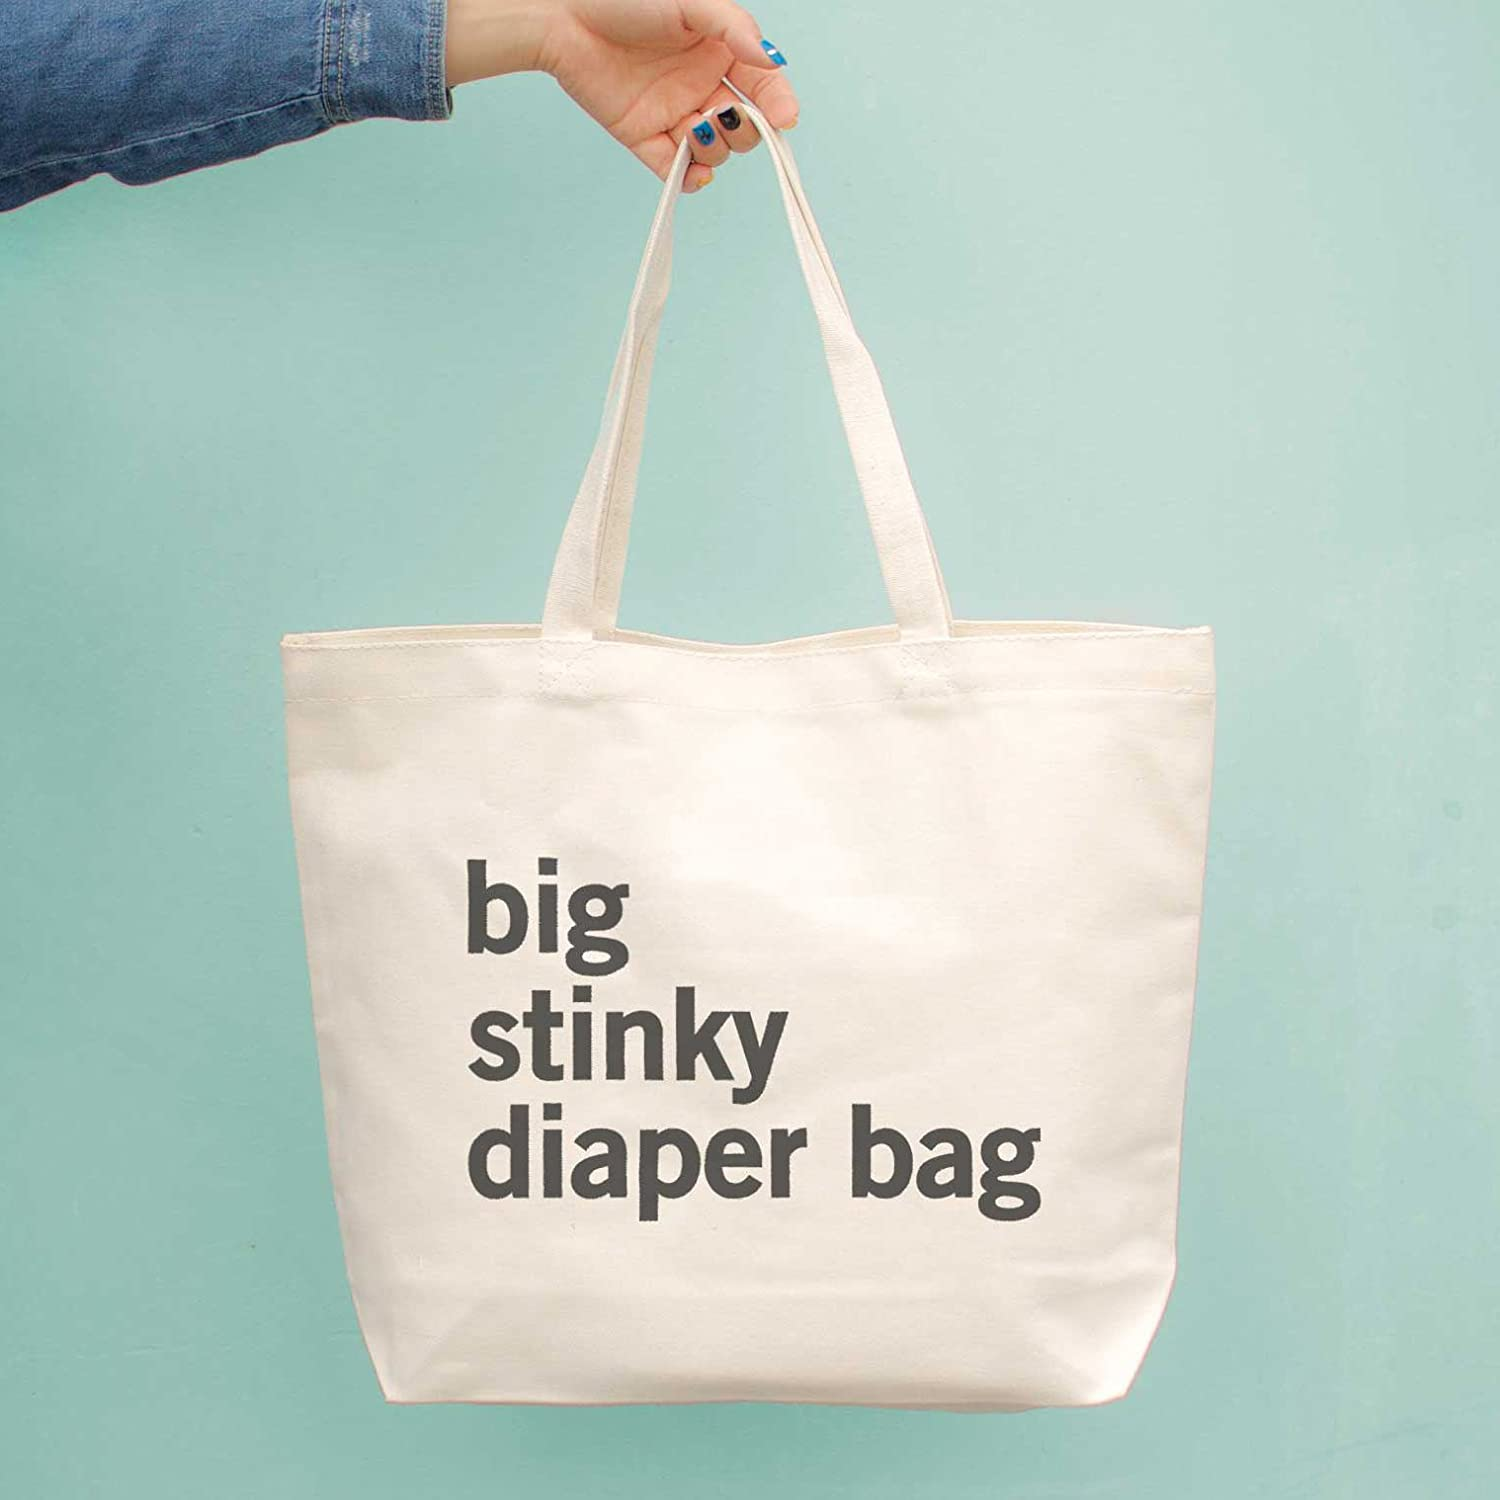 Love Women S Big Stinky Diaper Bag Baby Shower Or Mother S Day Gifts For New Mom Canvas Bag One Size White Amazon Co Uk Luggage